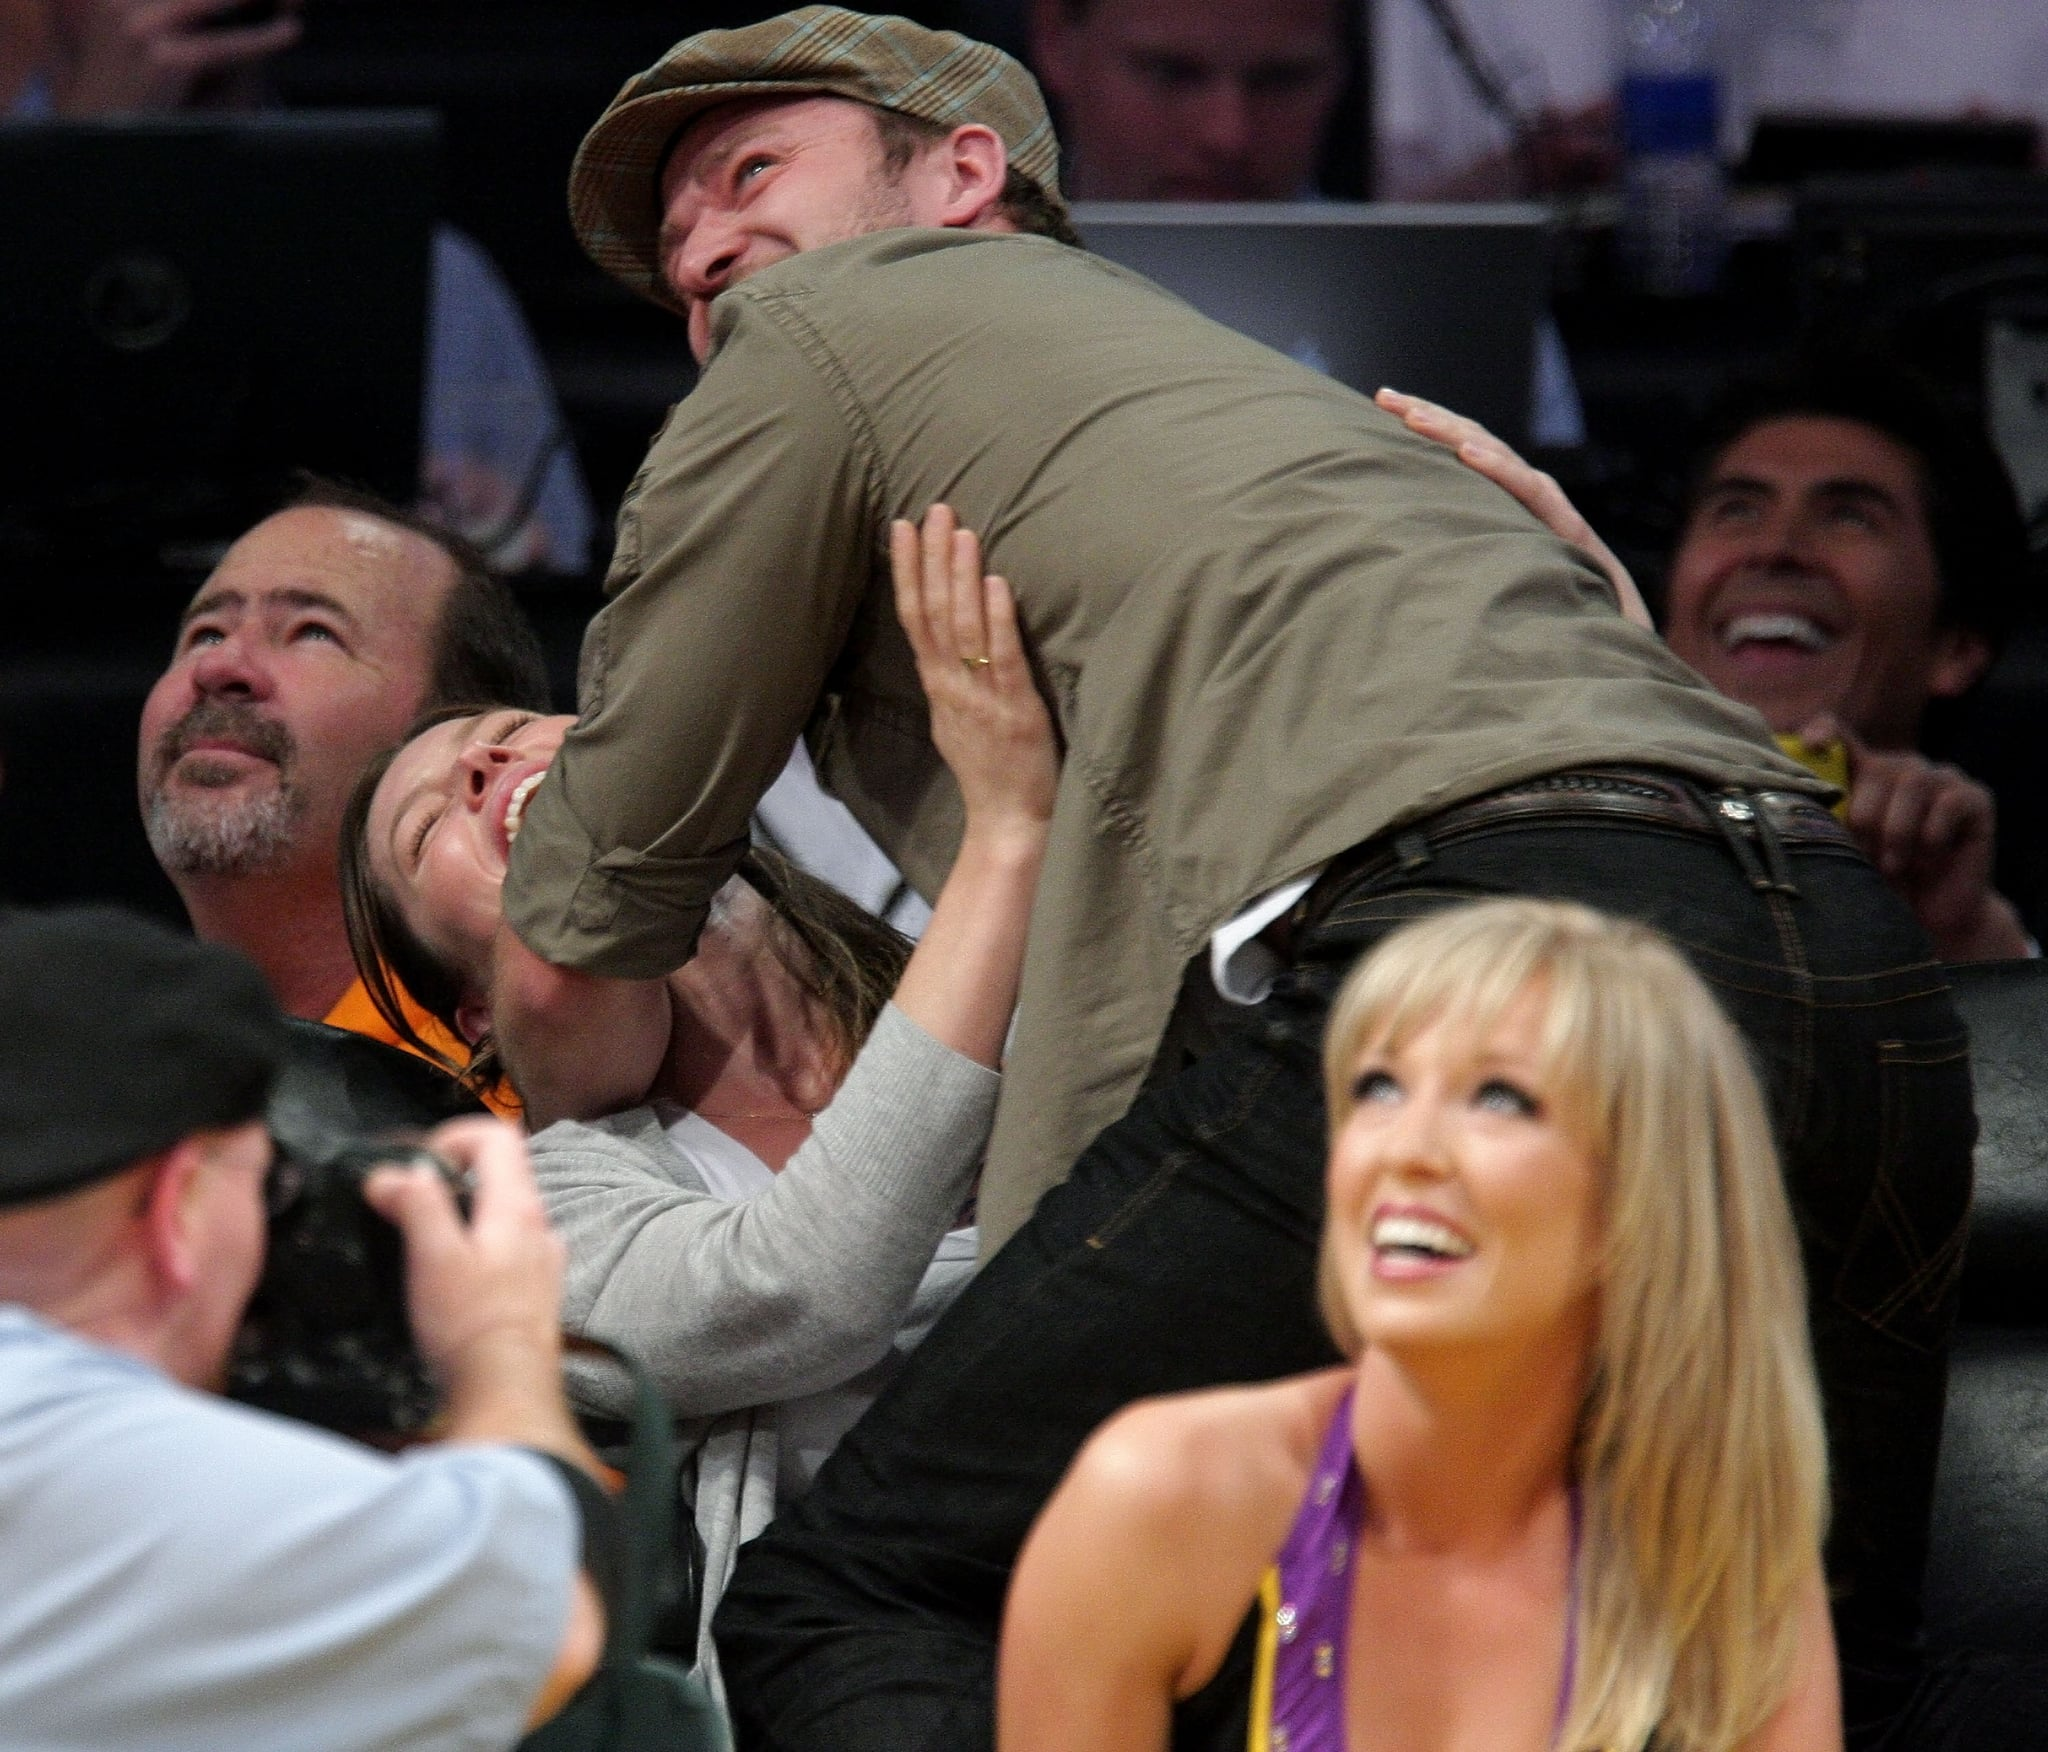 When he showed off some funny PDA with Jessica Biel.